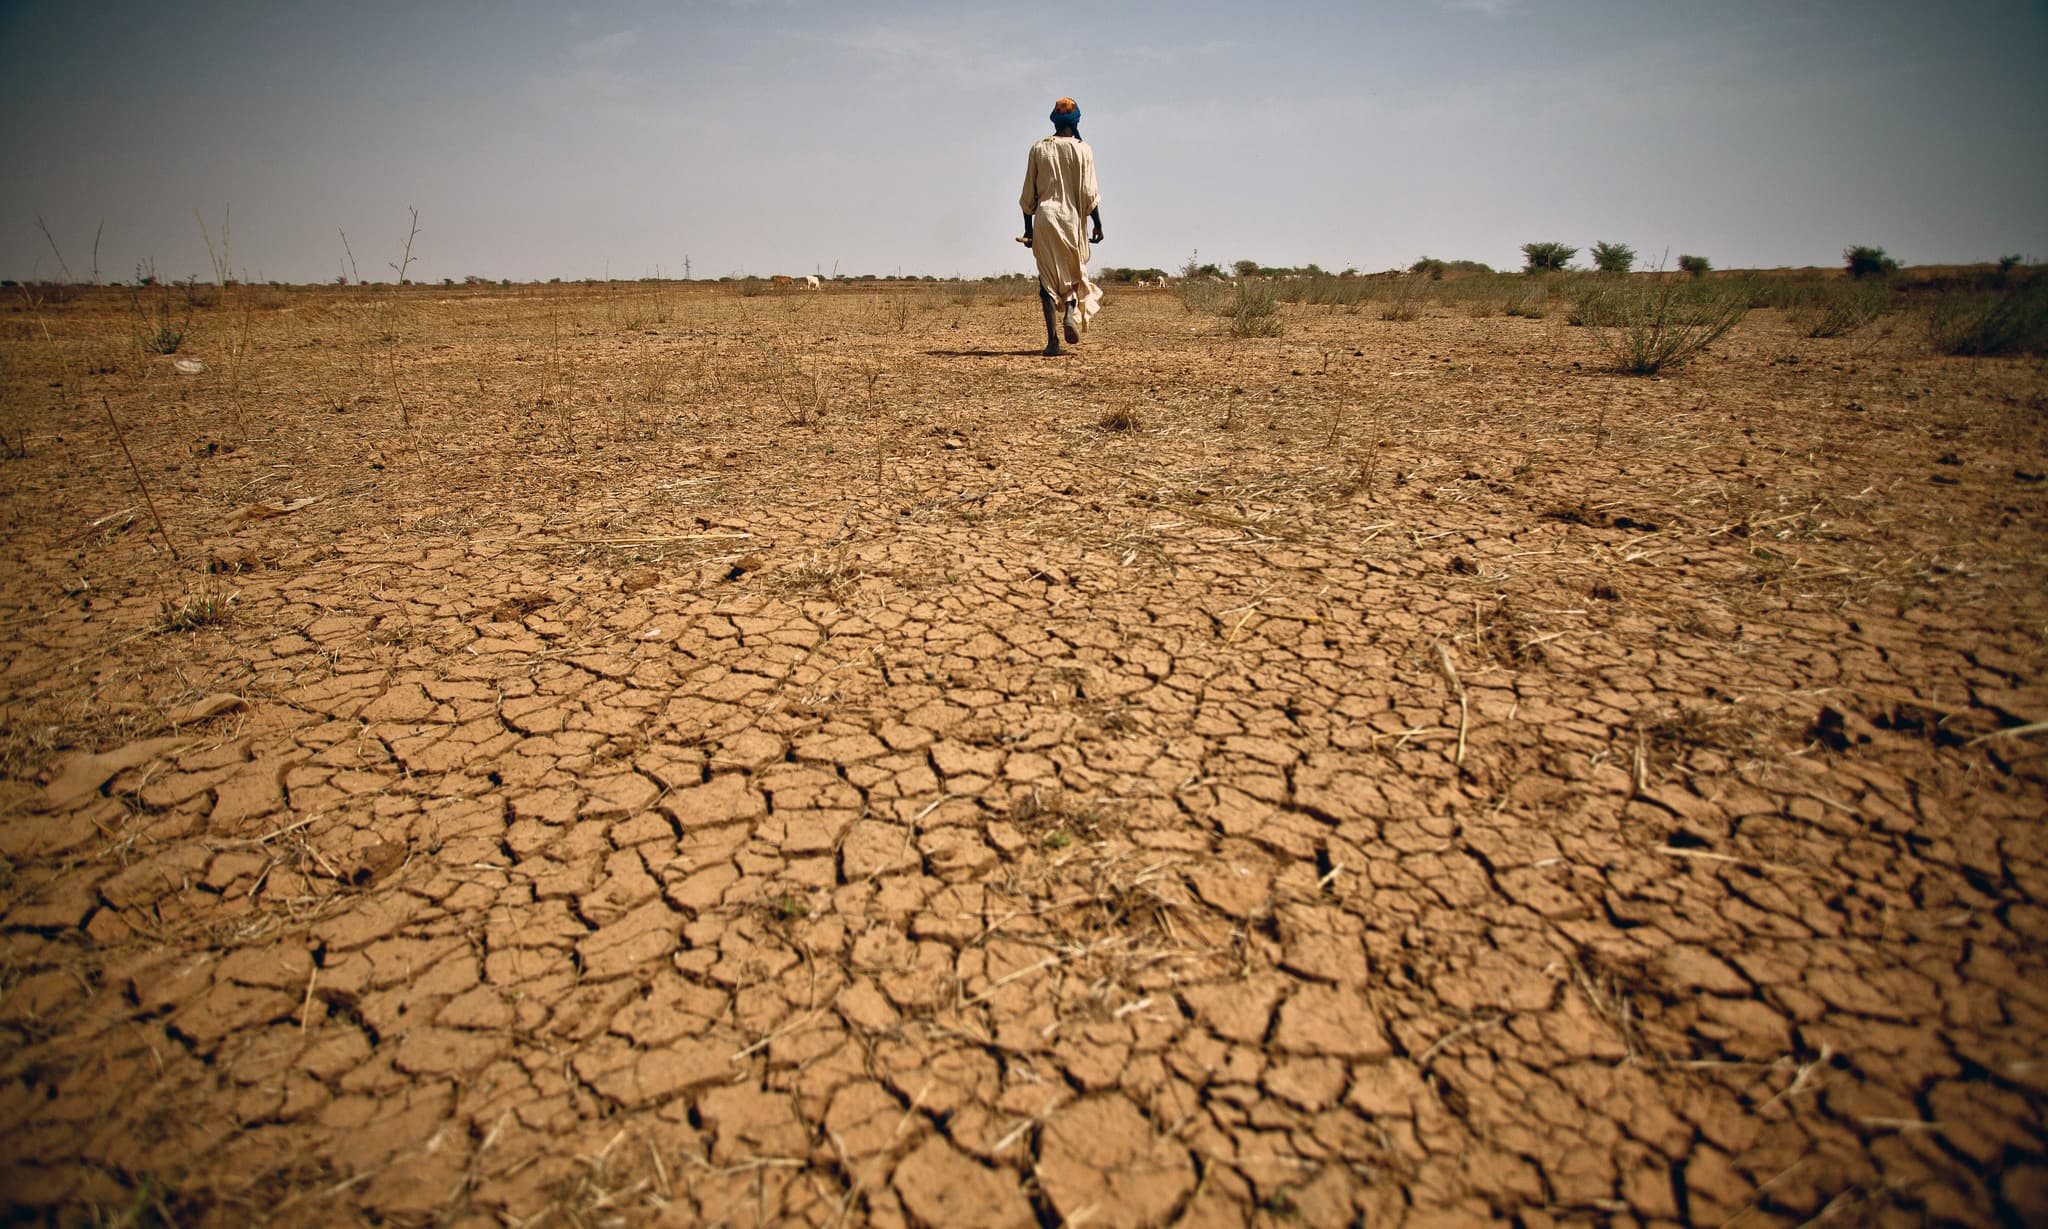 'Half of Balochistan gripped by drought'